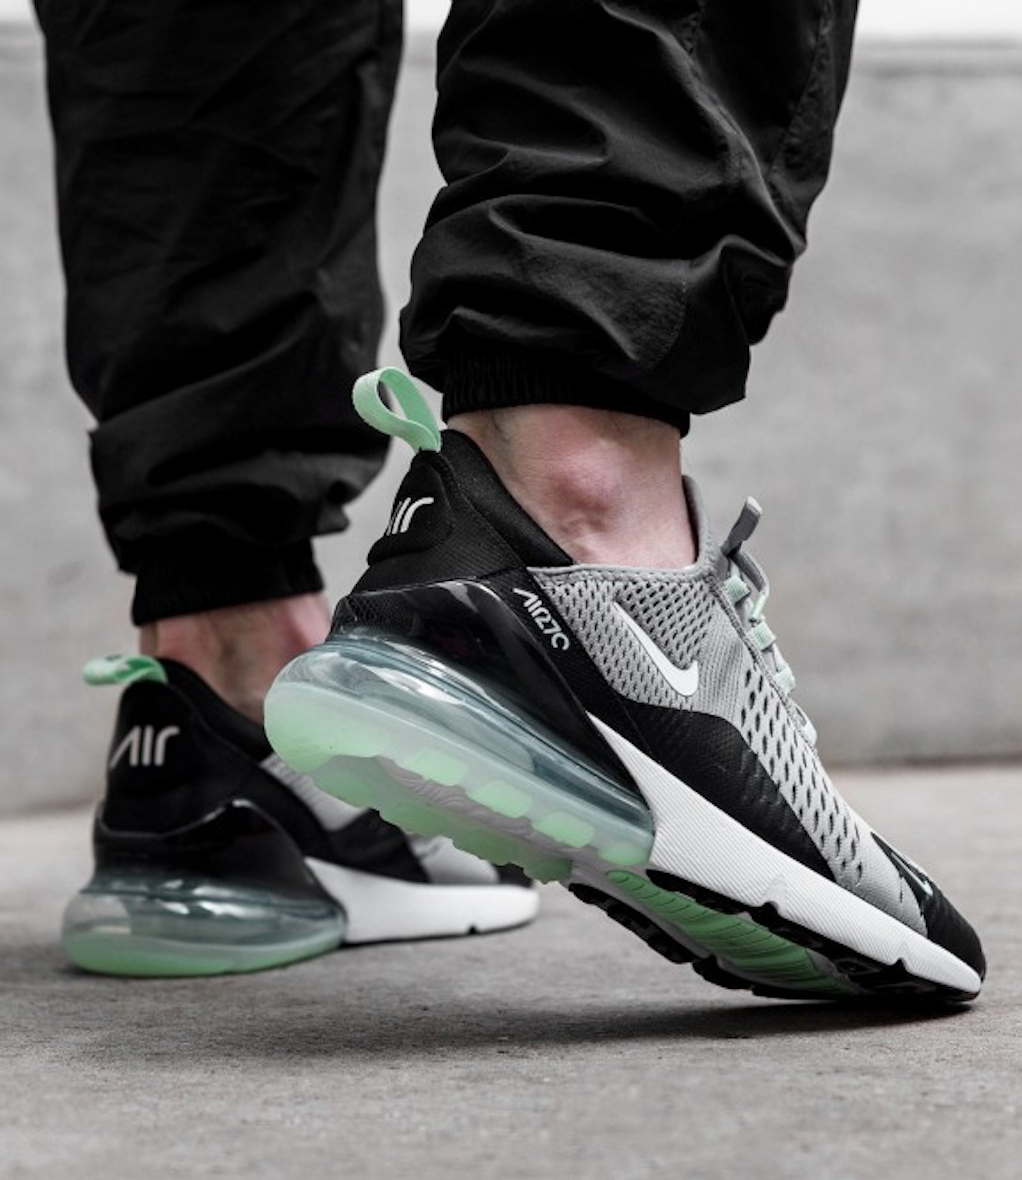 Nike Air Max 270 Grey Green Sneakers Rematch | Nike